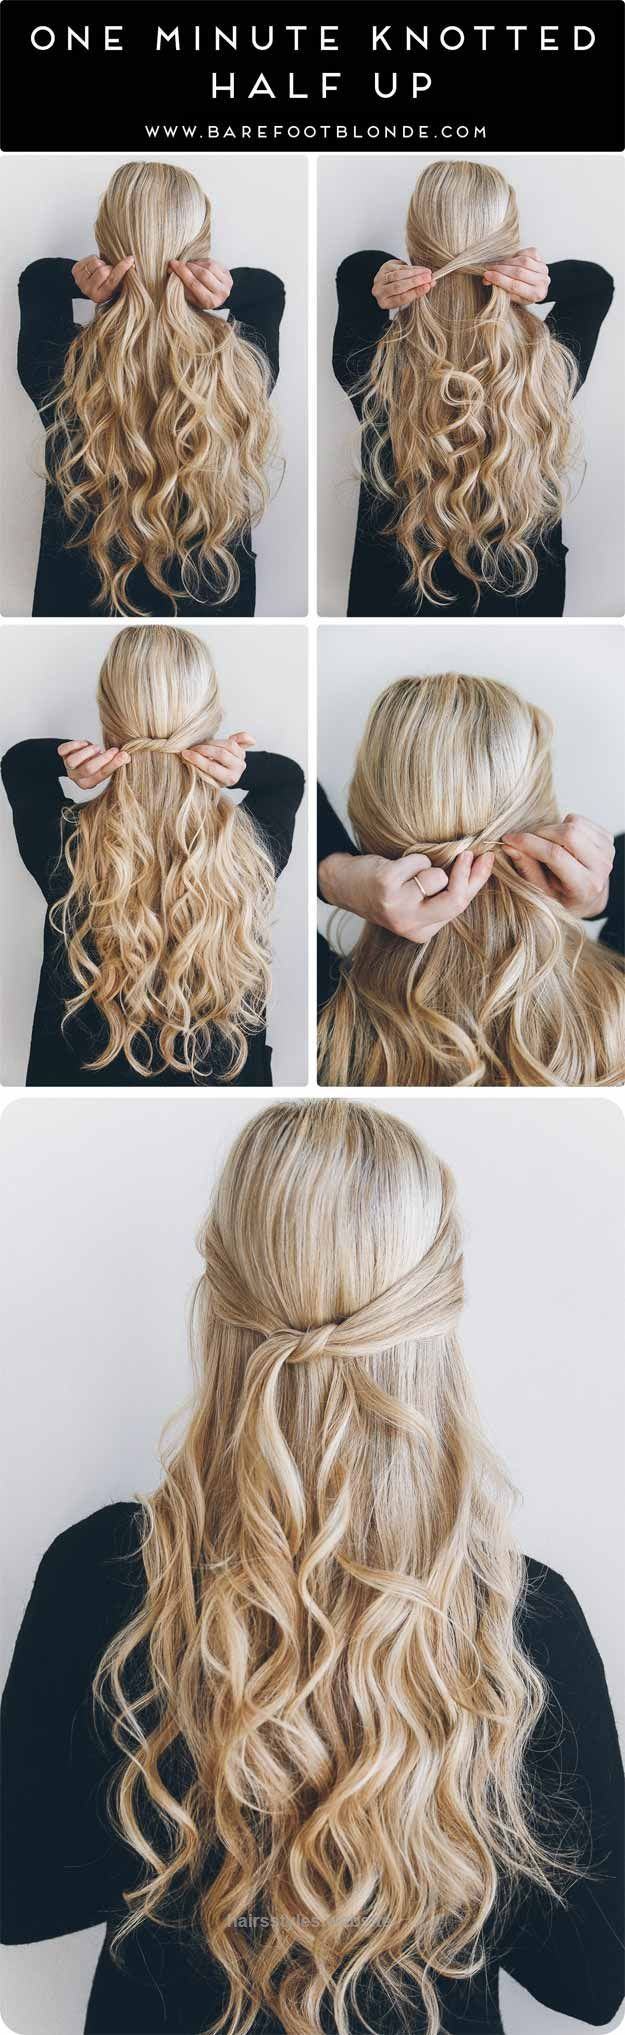 Neat Best 5 Minute Hairstyles – 1 Minute Knotted Half Up – Quick And Easy Hairstyles and Haircuts For Long Hair, That Are Super Simple and Great For Busy Mornings Or For School. Braids, Undo' ..